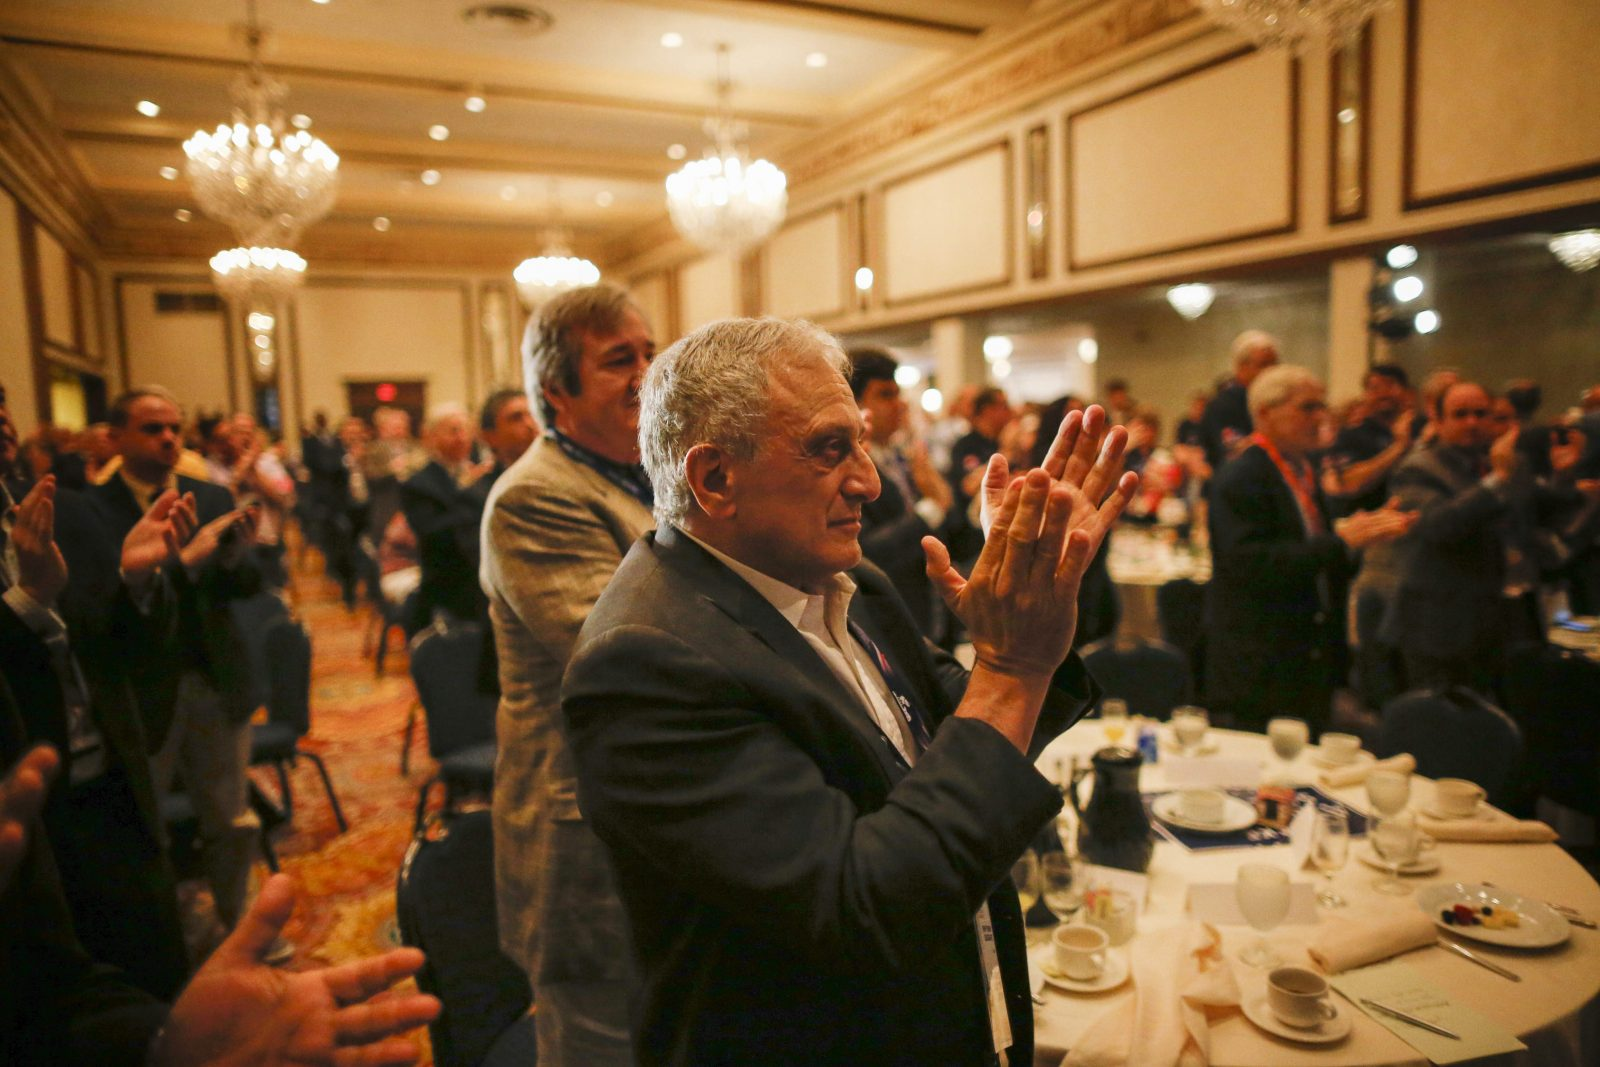 GOP Delegate Carl Paladino of Buffalo applauds during the New York delegation breakfast at the Renaissance Hotel in Cleveland on July 18. (Derek Gee/Buffalo News)